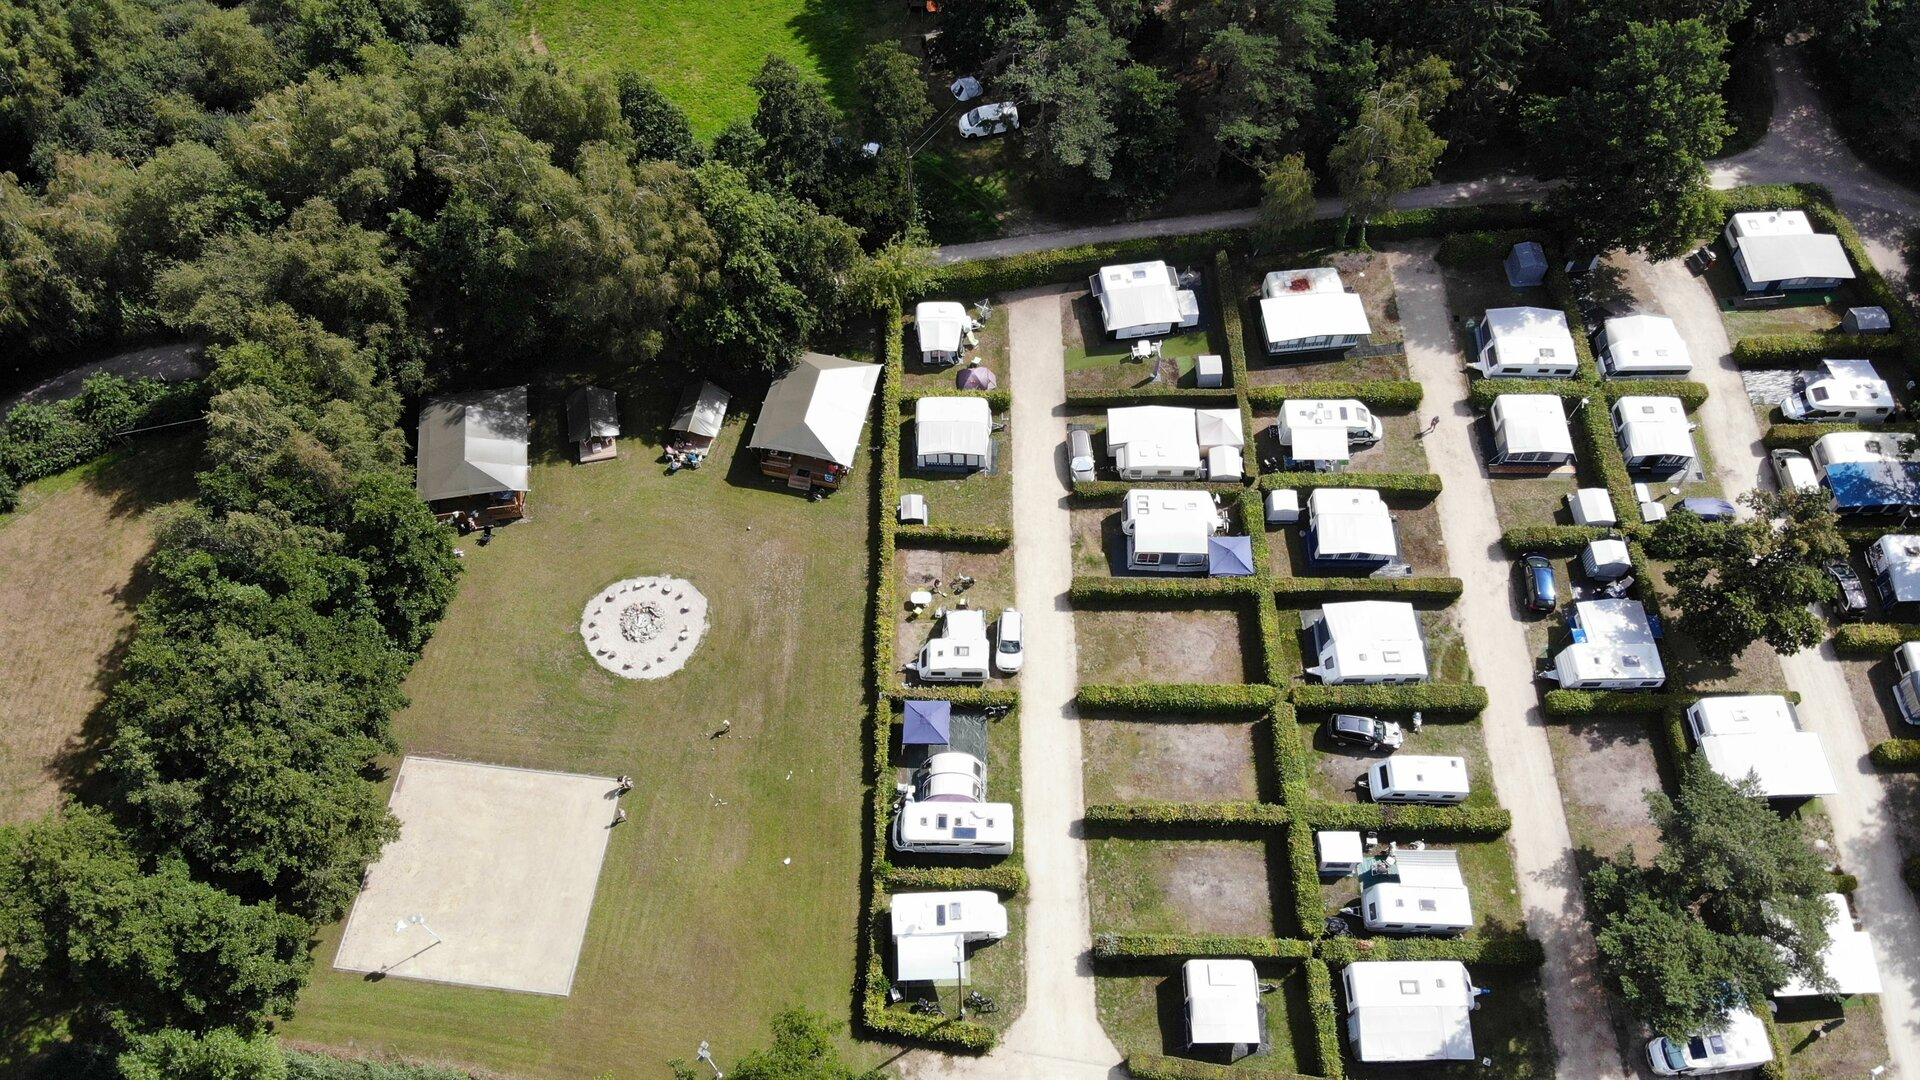 Camping Holsteenbron - Drone